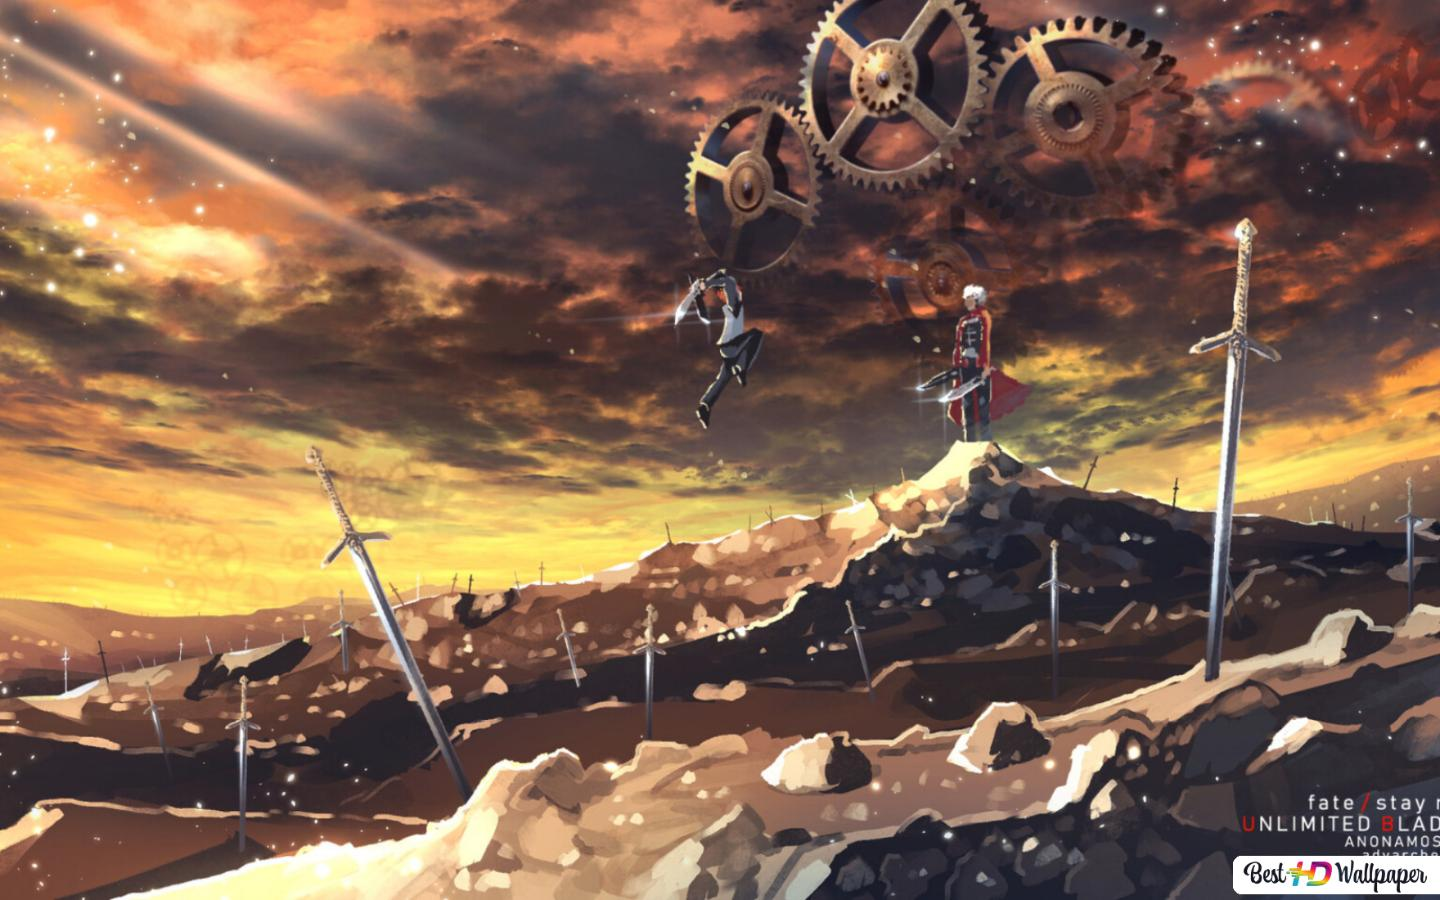 Fate Stay Night Unlimited Blade Works Hd Wallpaper Download